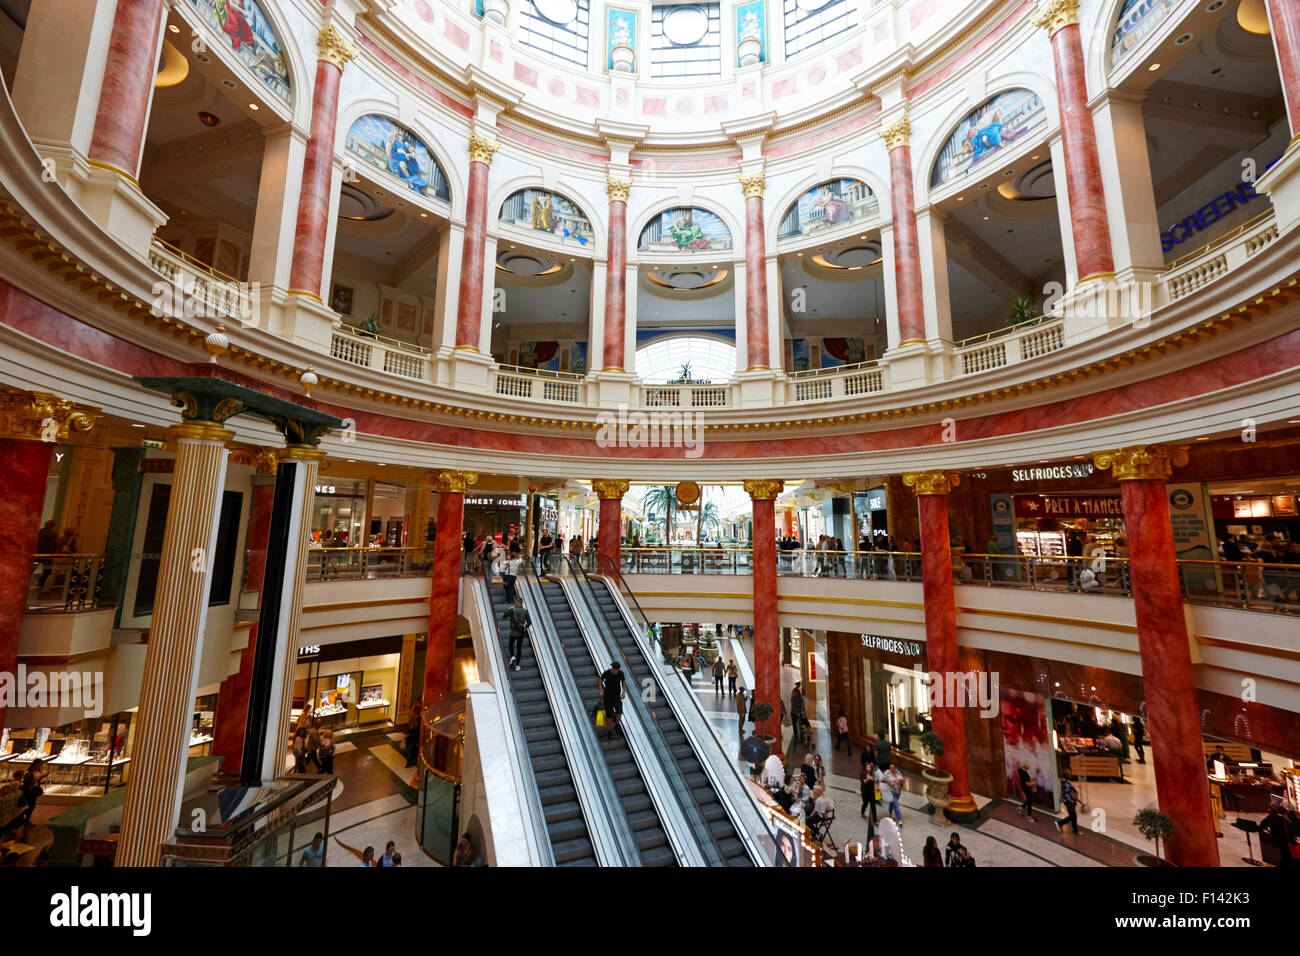 The trafford centre Manchester uk - Stock Image